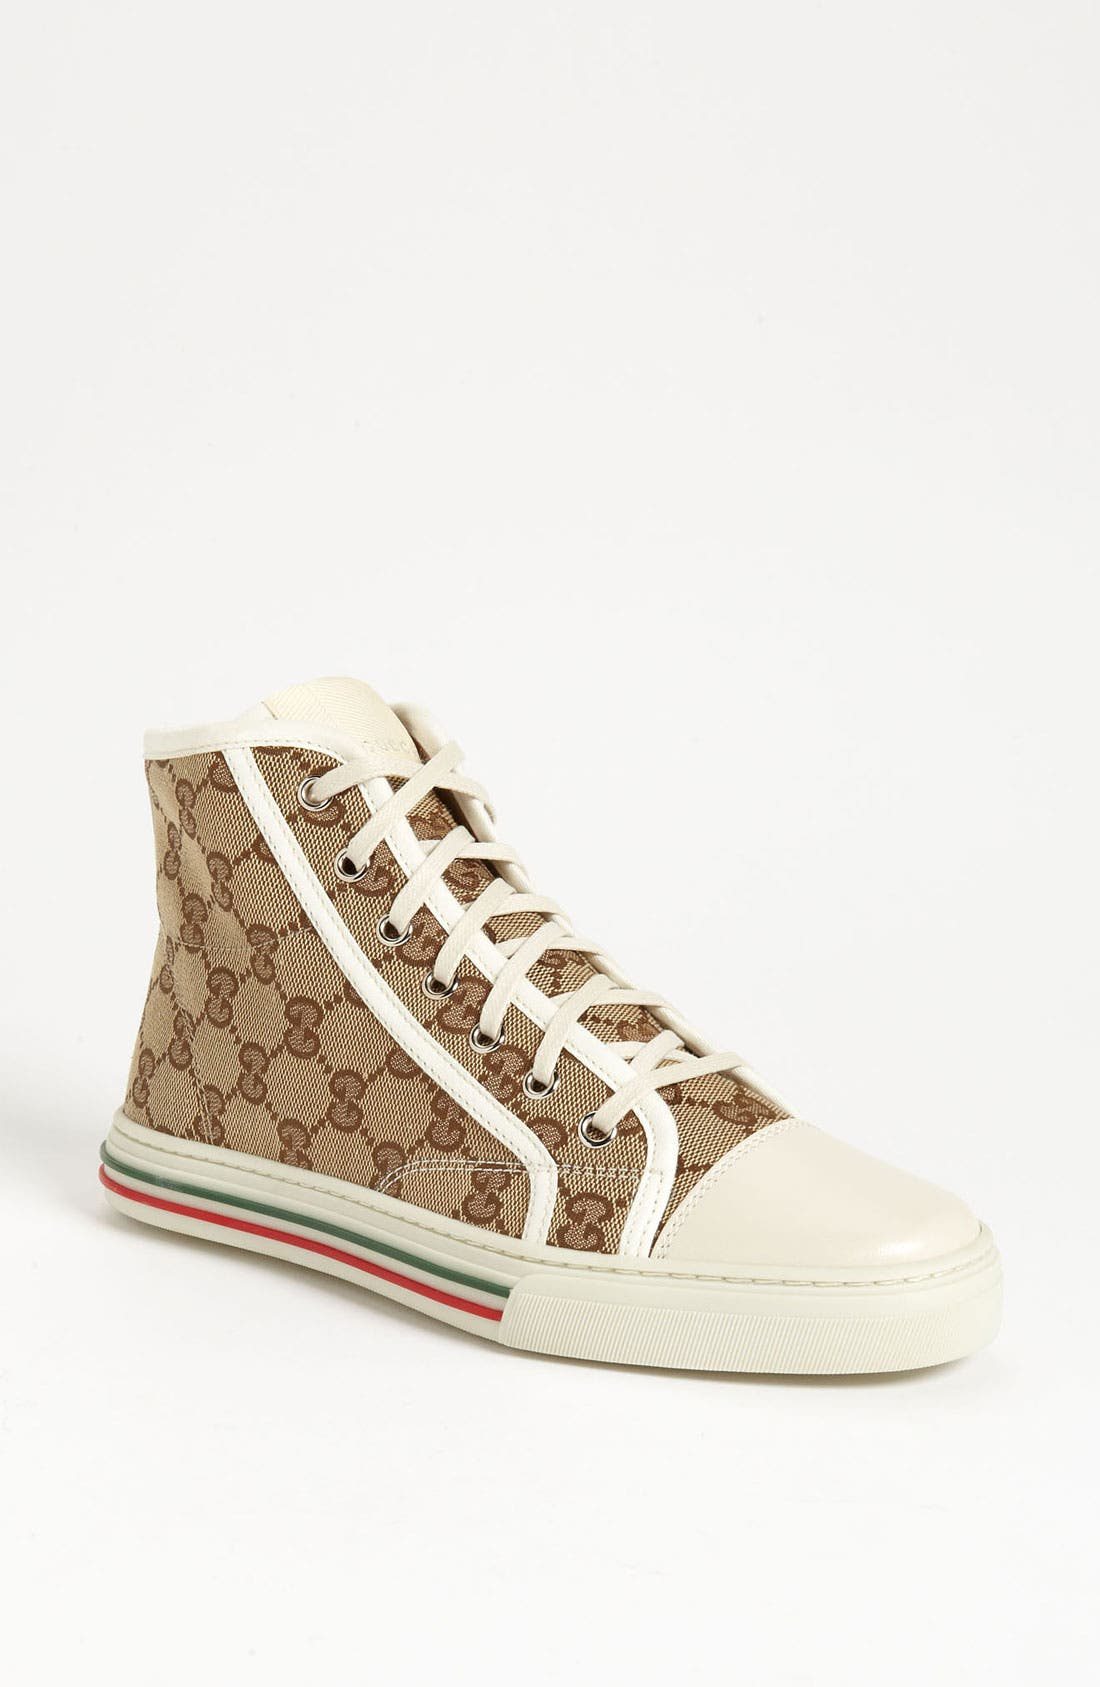 Main Image - Gucci 'California' High Top Sneaker